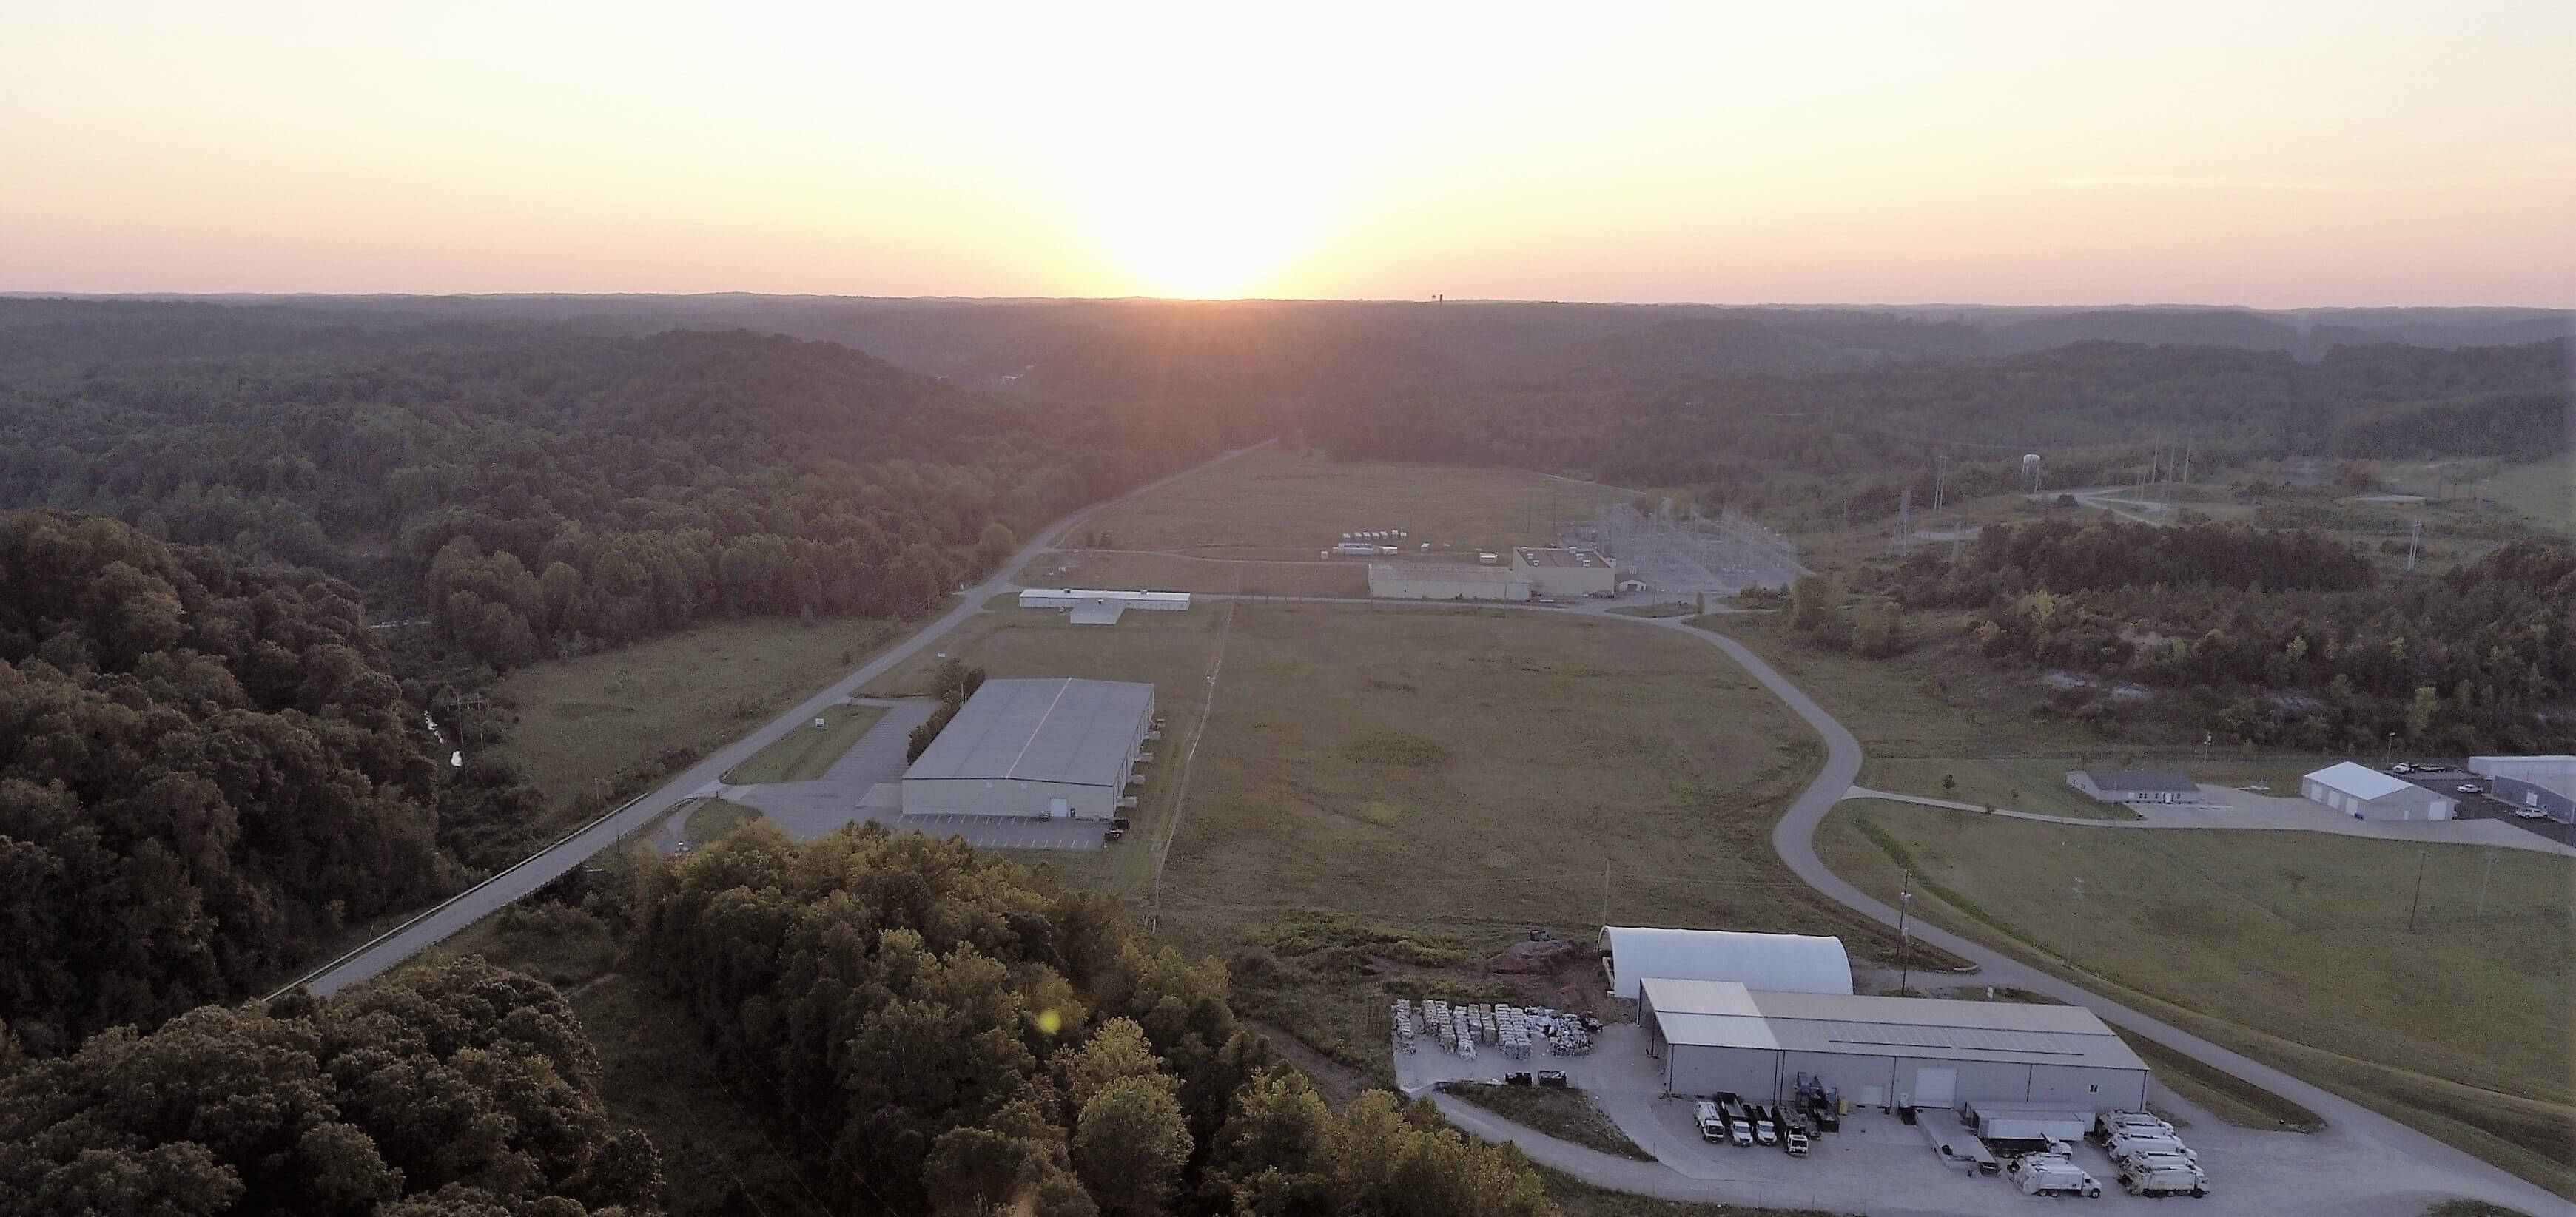 Aerial image of Bill Theisen Industrial Park